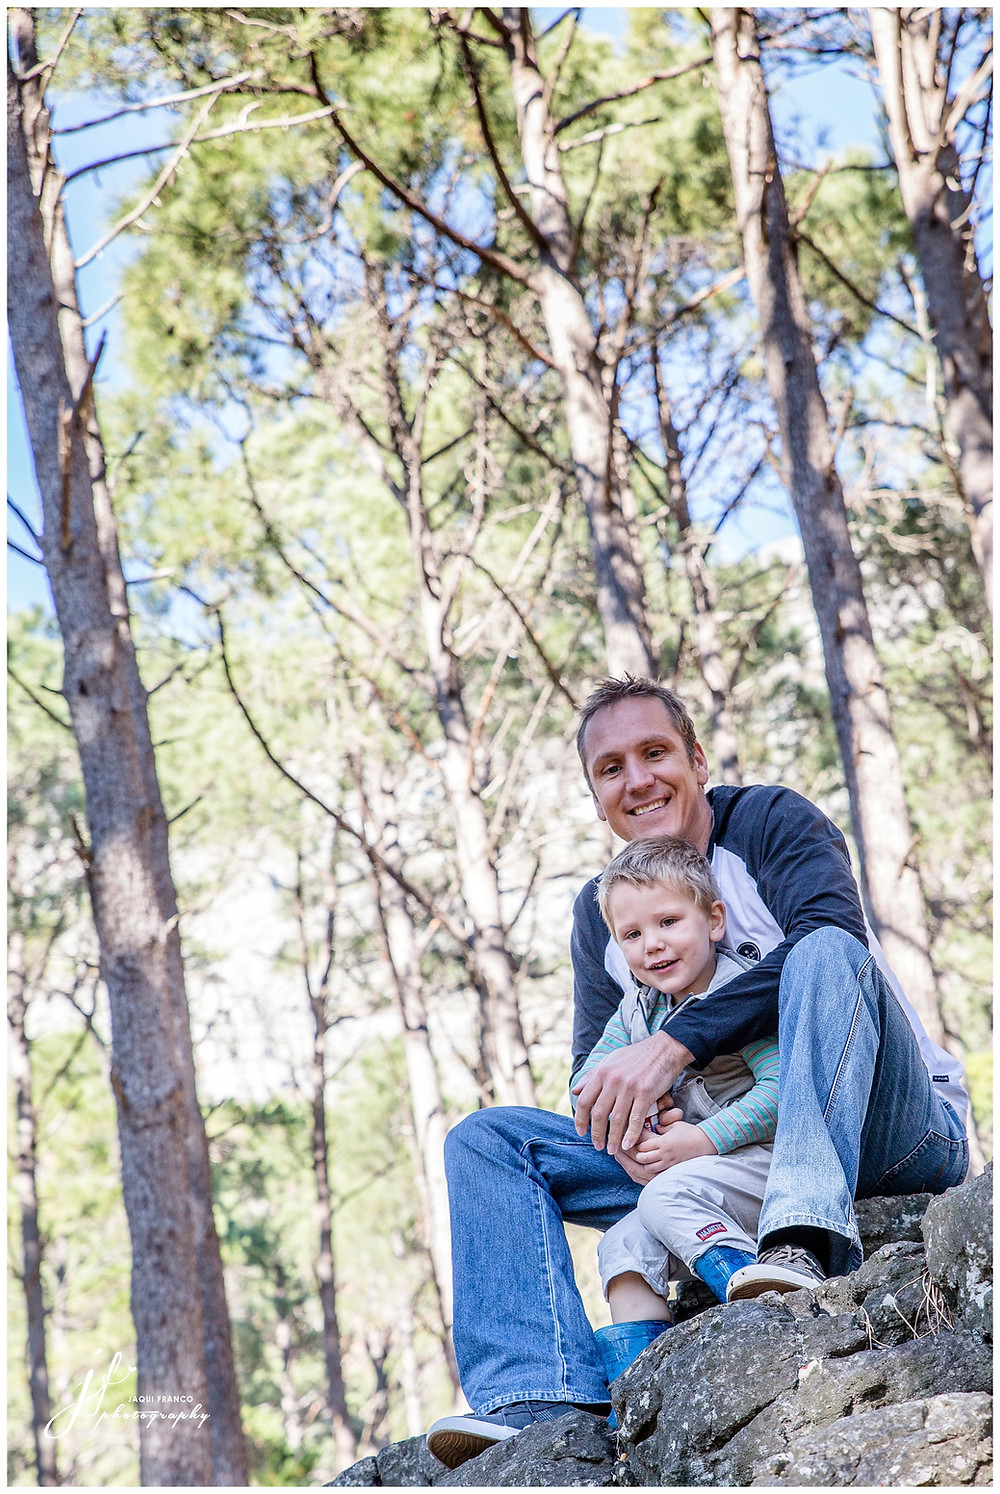 Family shoot at Deer Park , Cape Town by Jaqui Franco Photography